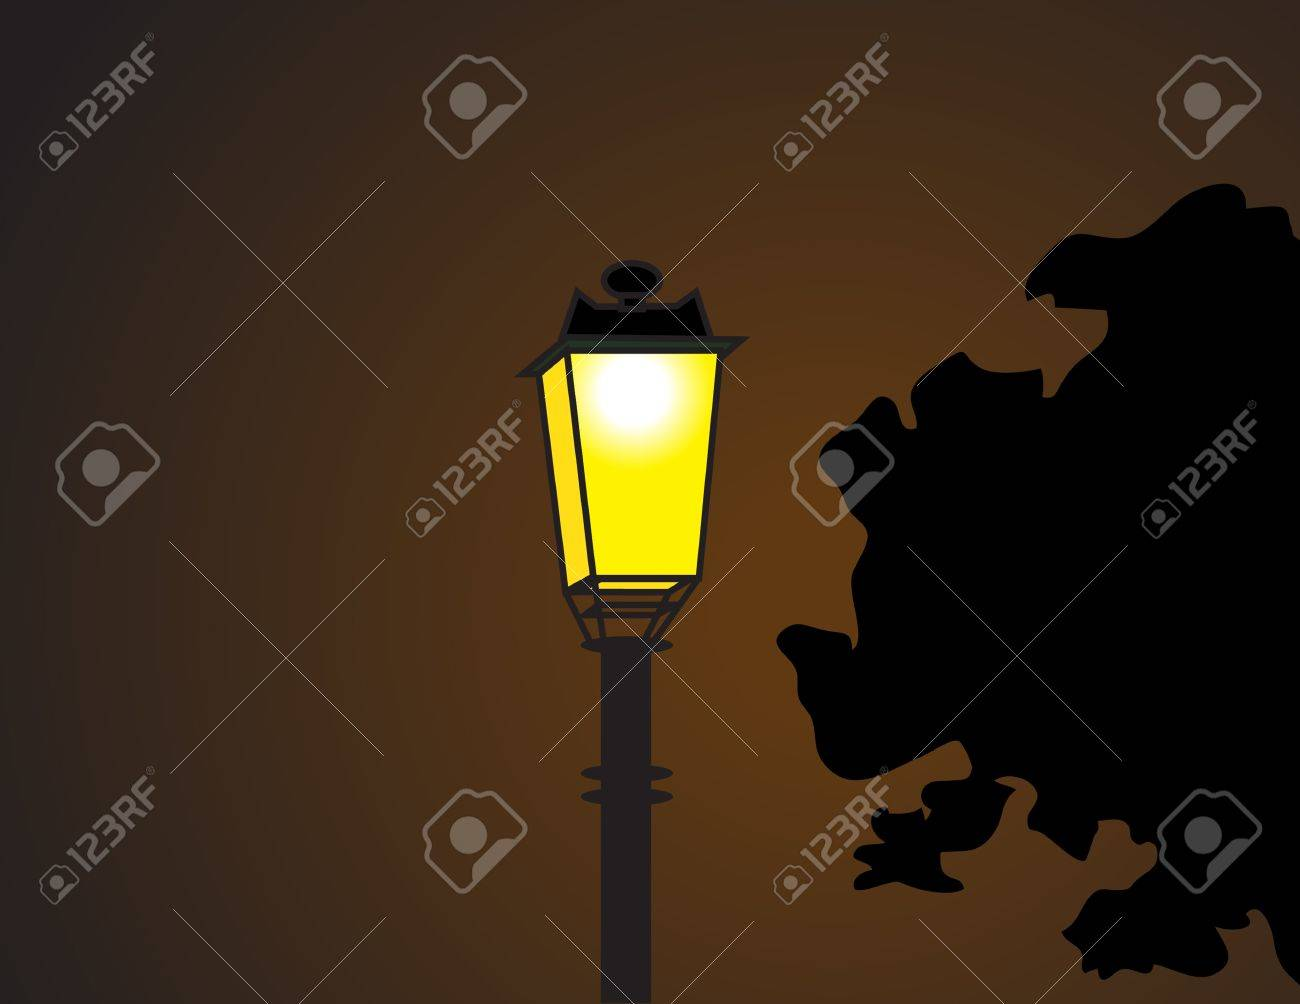 The Electricity Post in the Dark Night Stock Vector - 17210288